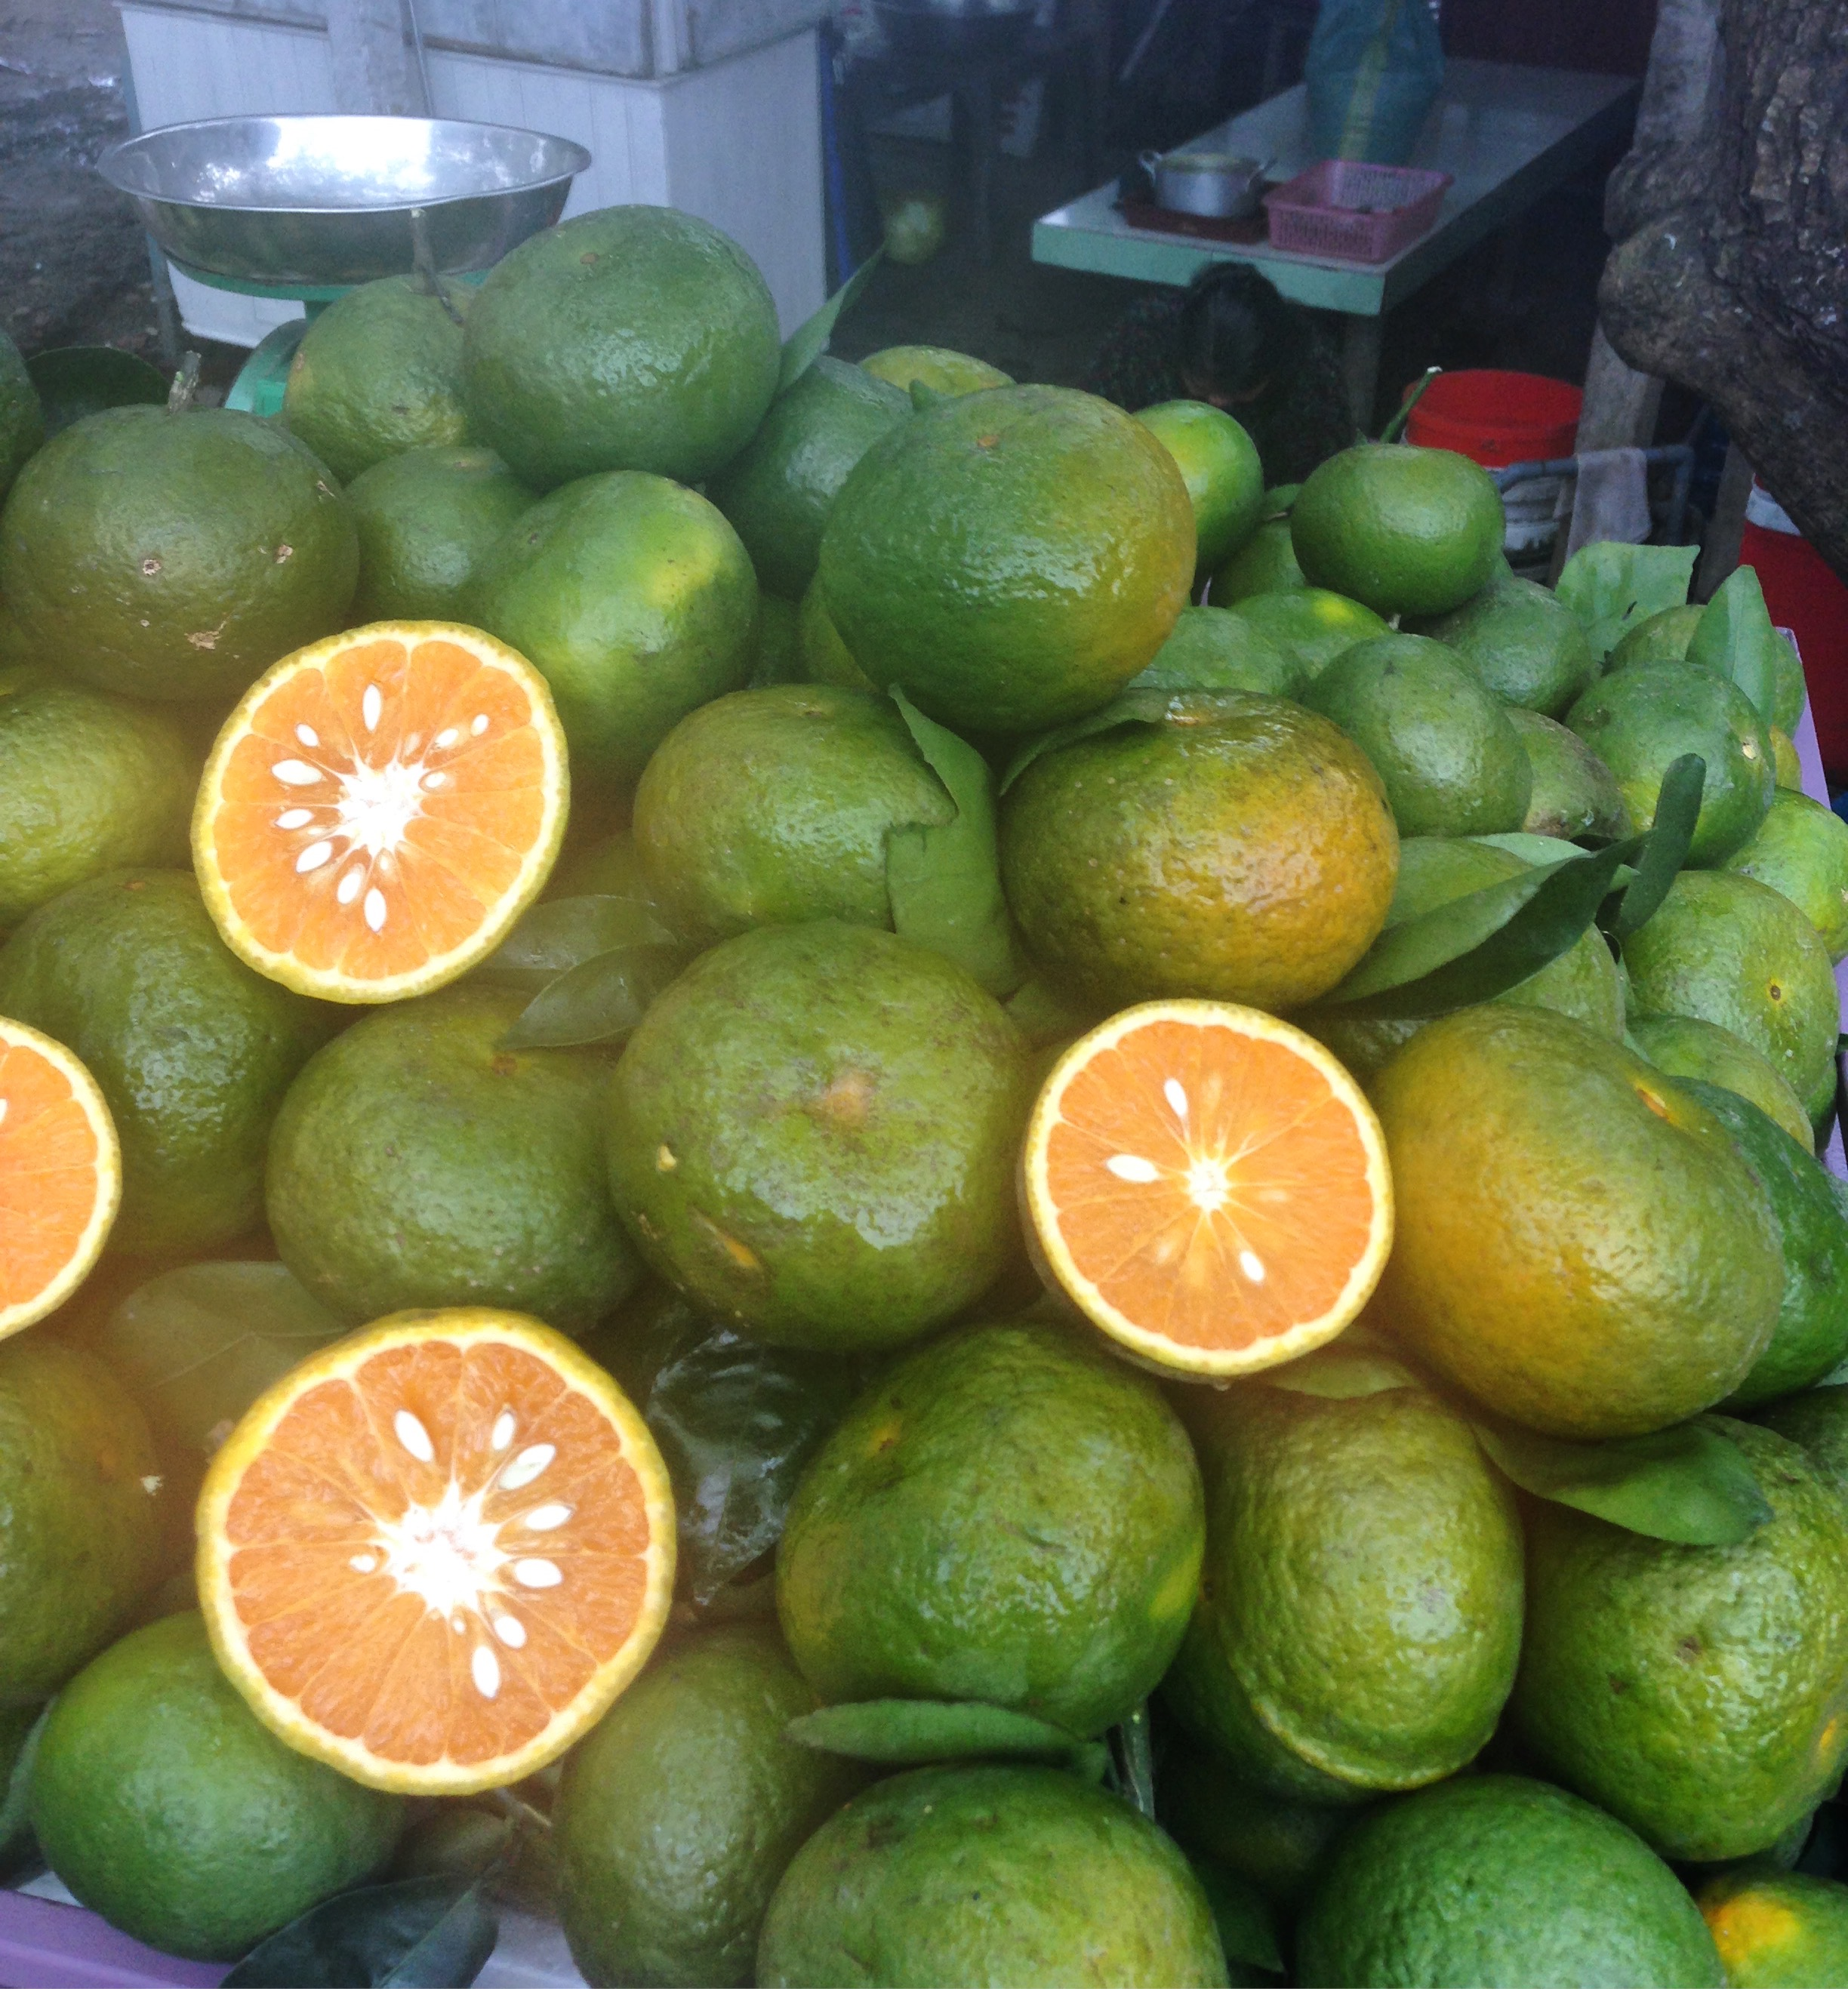 Vietnamese oranges are green on the outside. If you are looking for a freshly squeezed orange juice to combat the heat, then look for a stand that has piles of fresh green oranges. They are particularly juicy, and the flavour is mild in comparison to some of our oranges in Australia. Vietnamese typically will add sugar to the orange juice. I don't mind that, but I usually ask for no sugar.